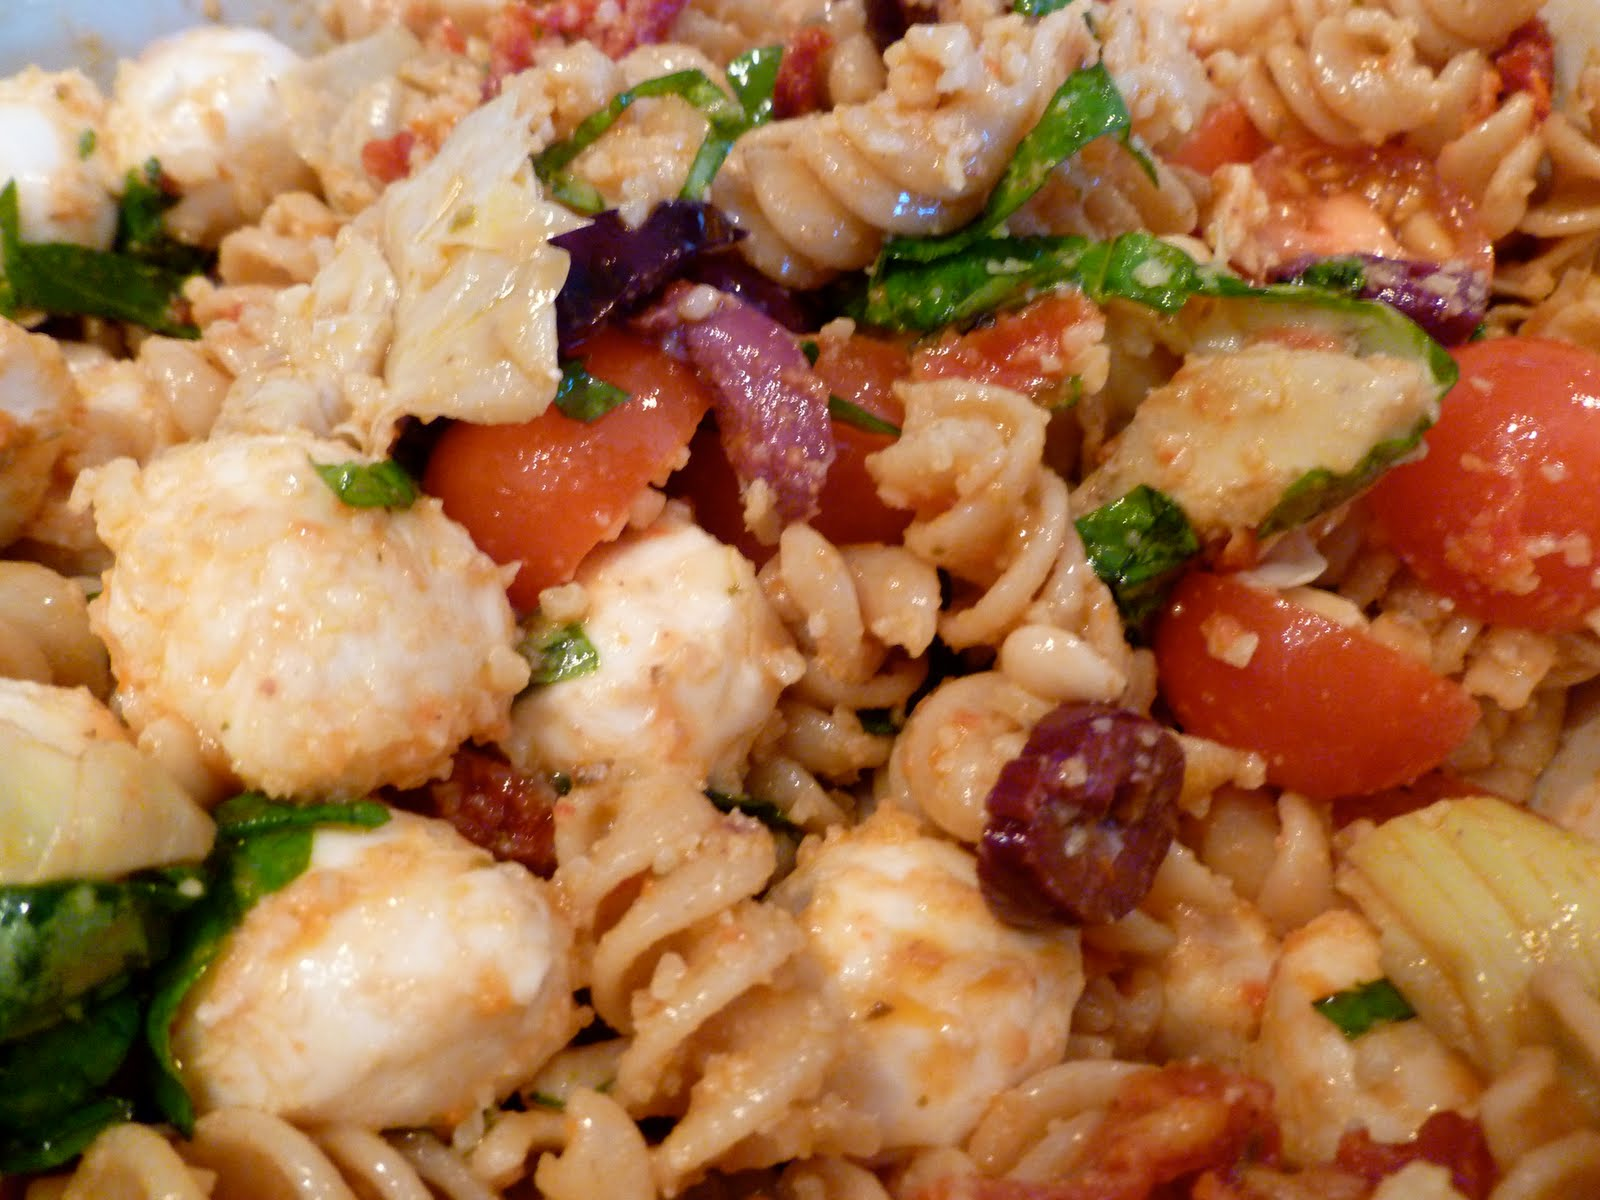 Feeling Saucy: Sun-Dried Tomato Pasta Salad